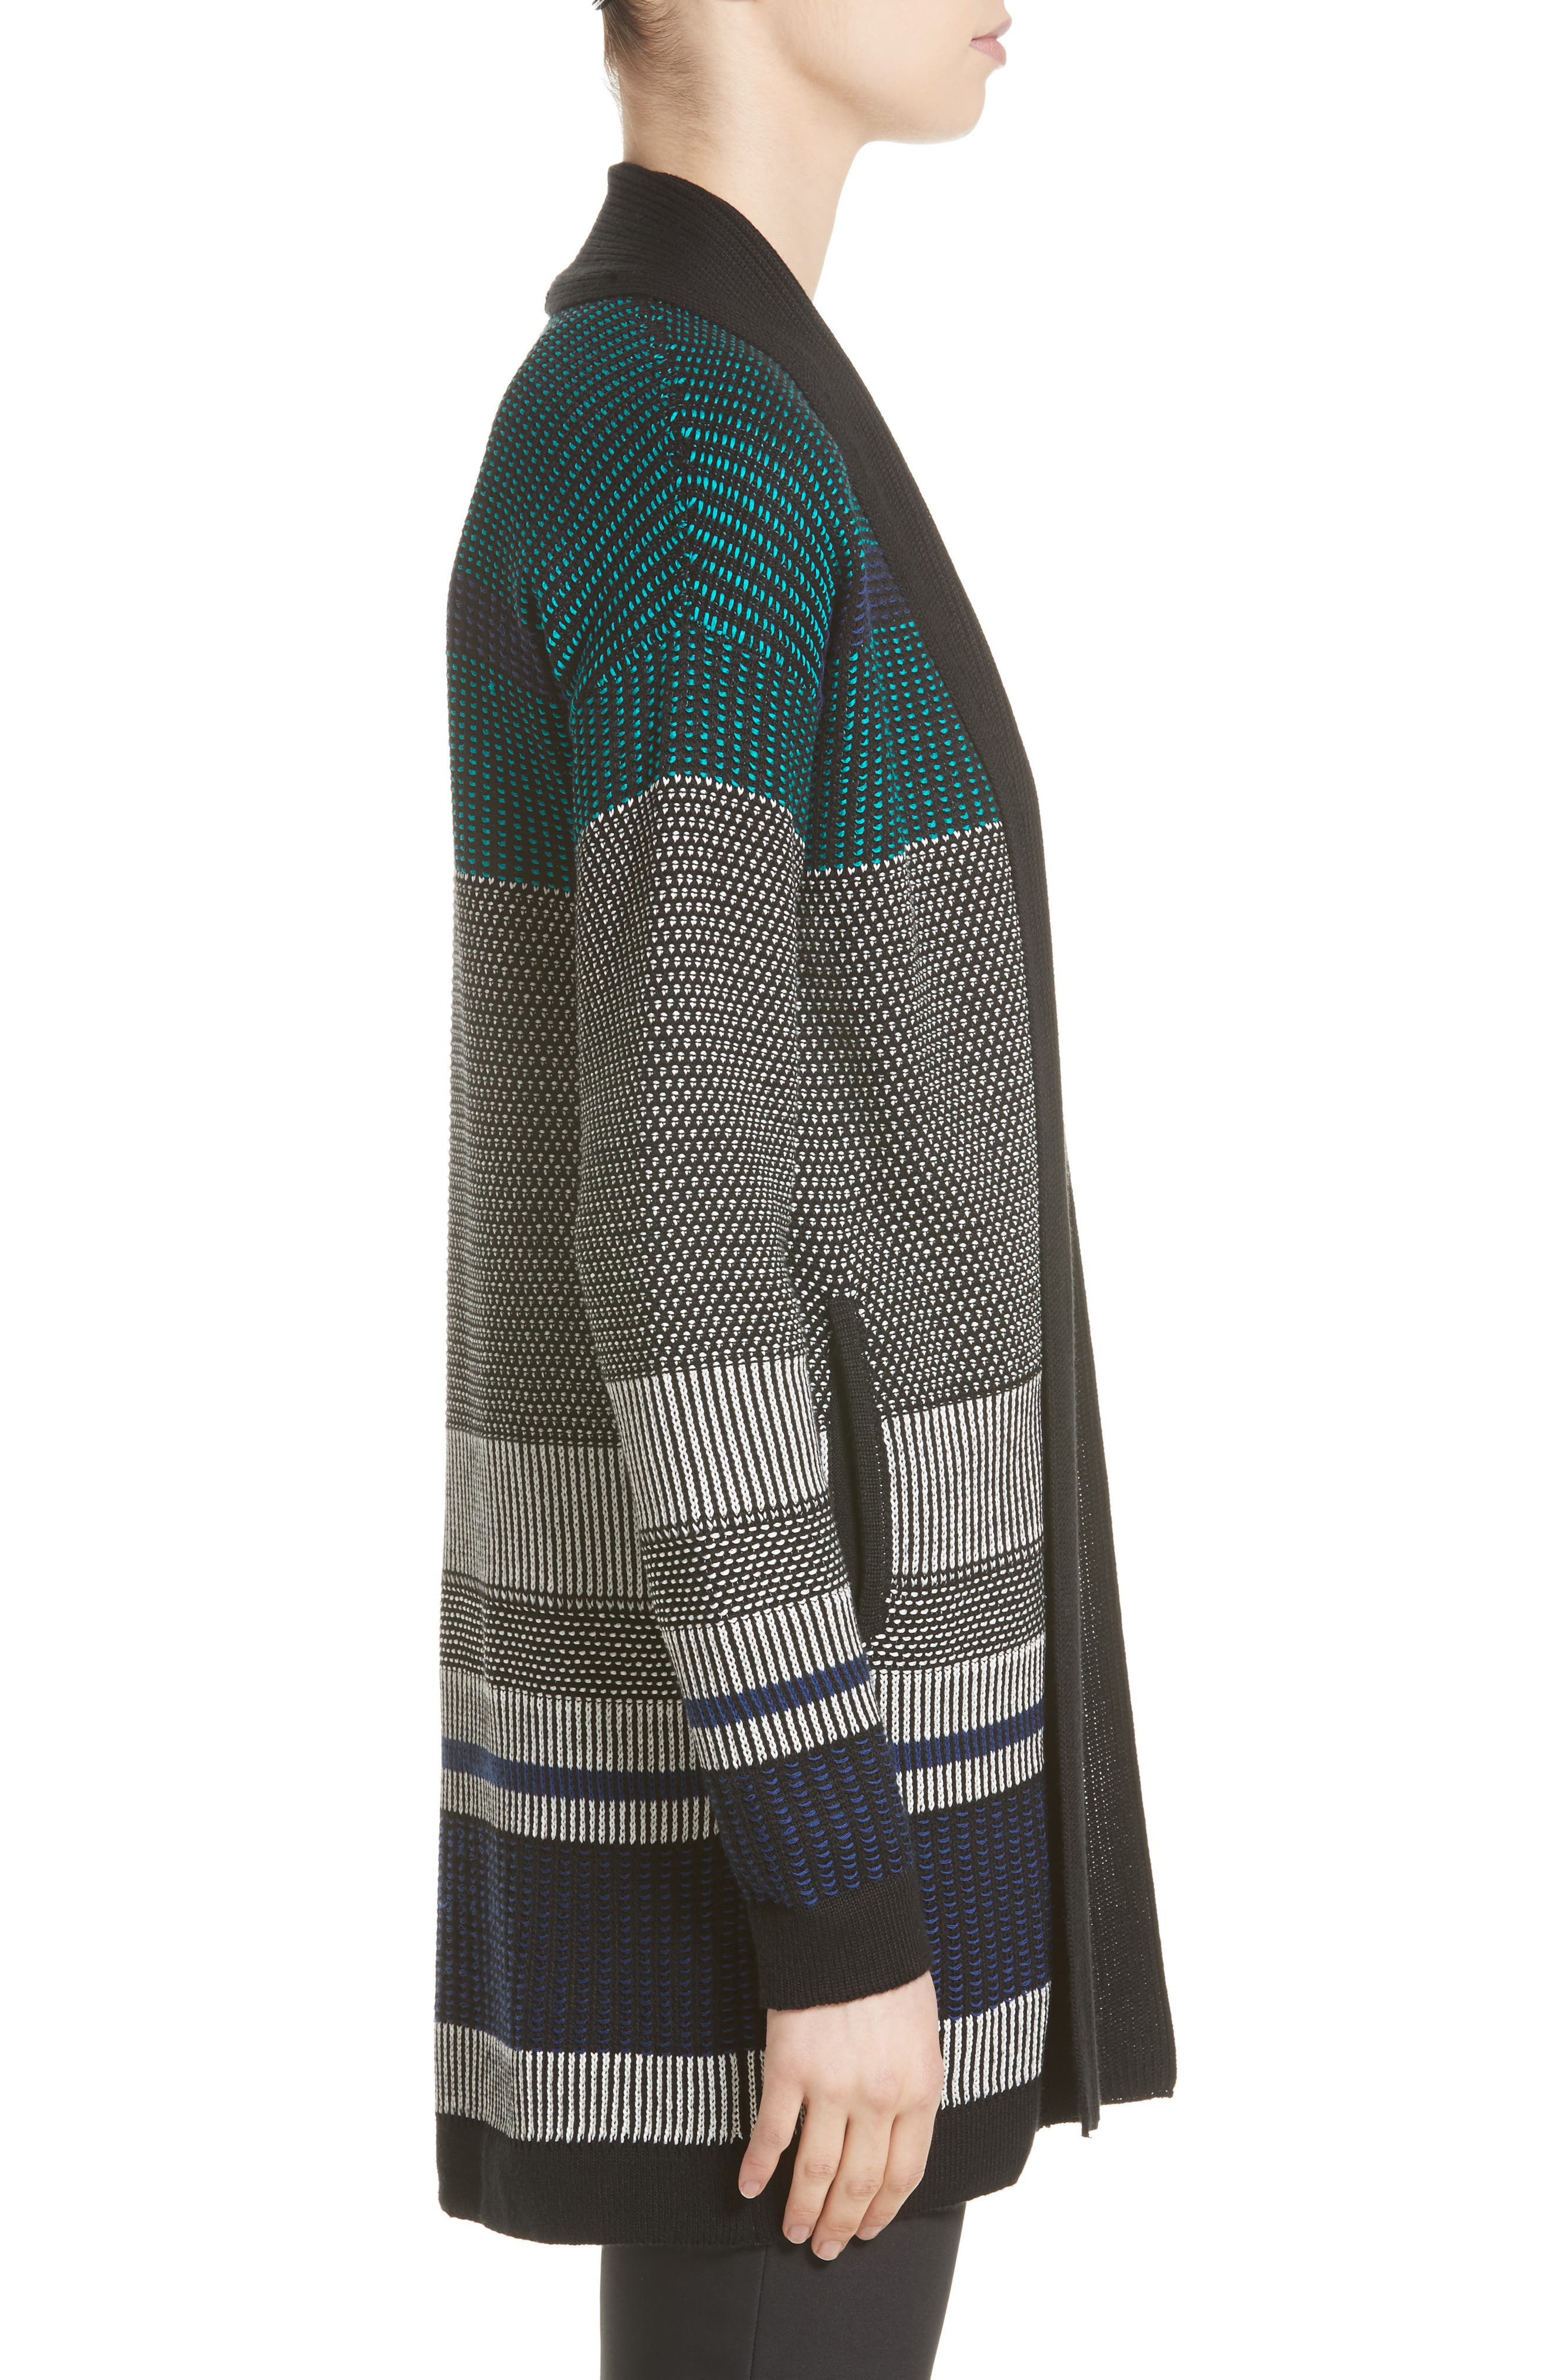 Engineered Inlay Stitch Knit Cardigan,                             Alternate thumbnail 3, color,                             020